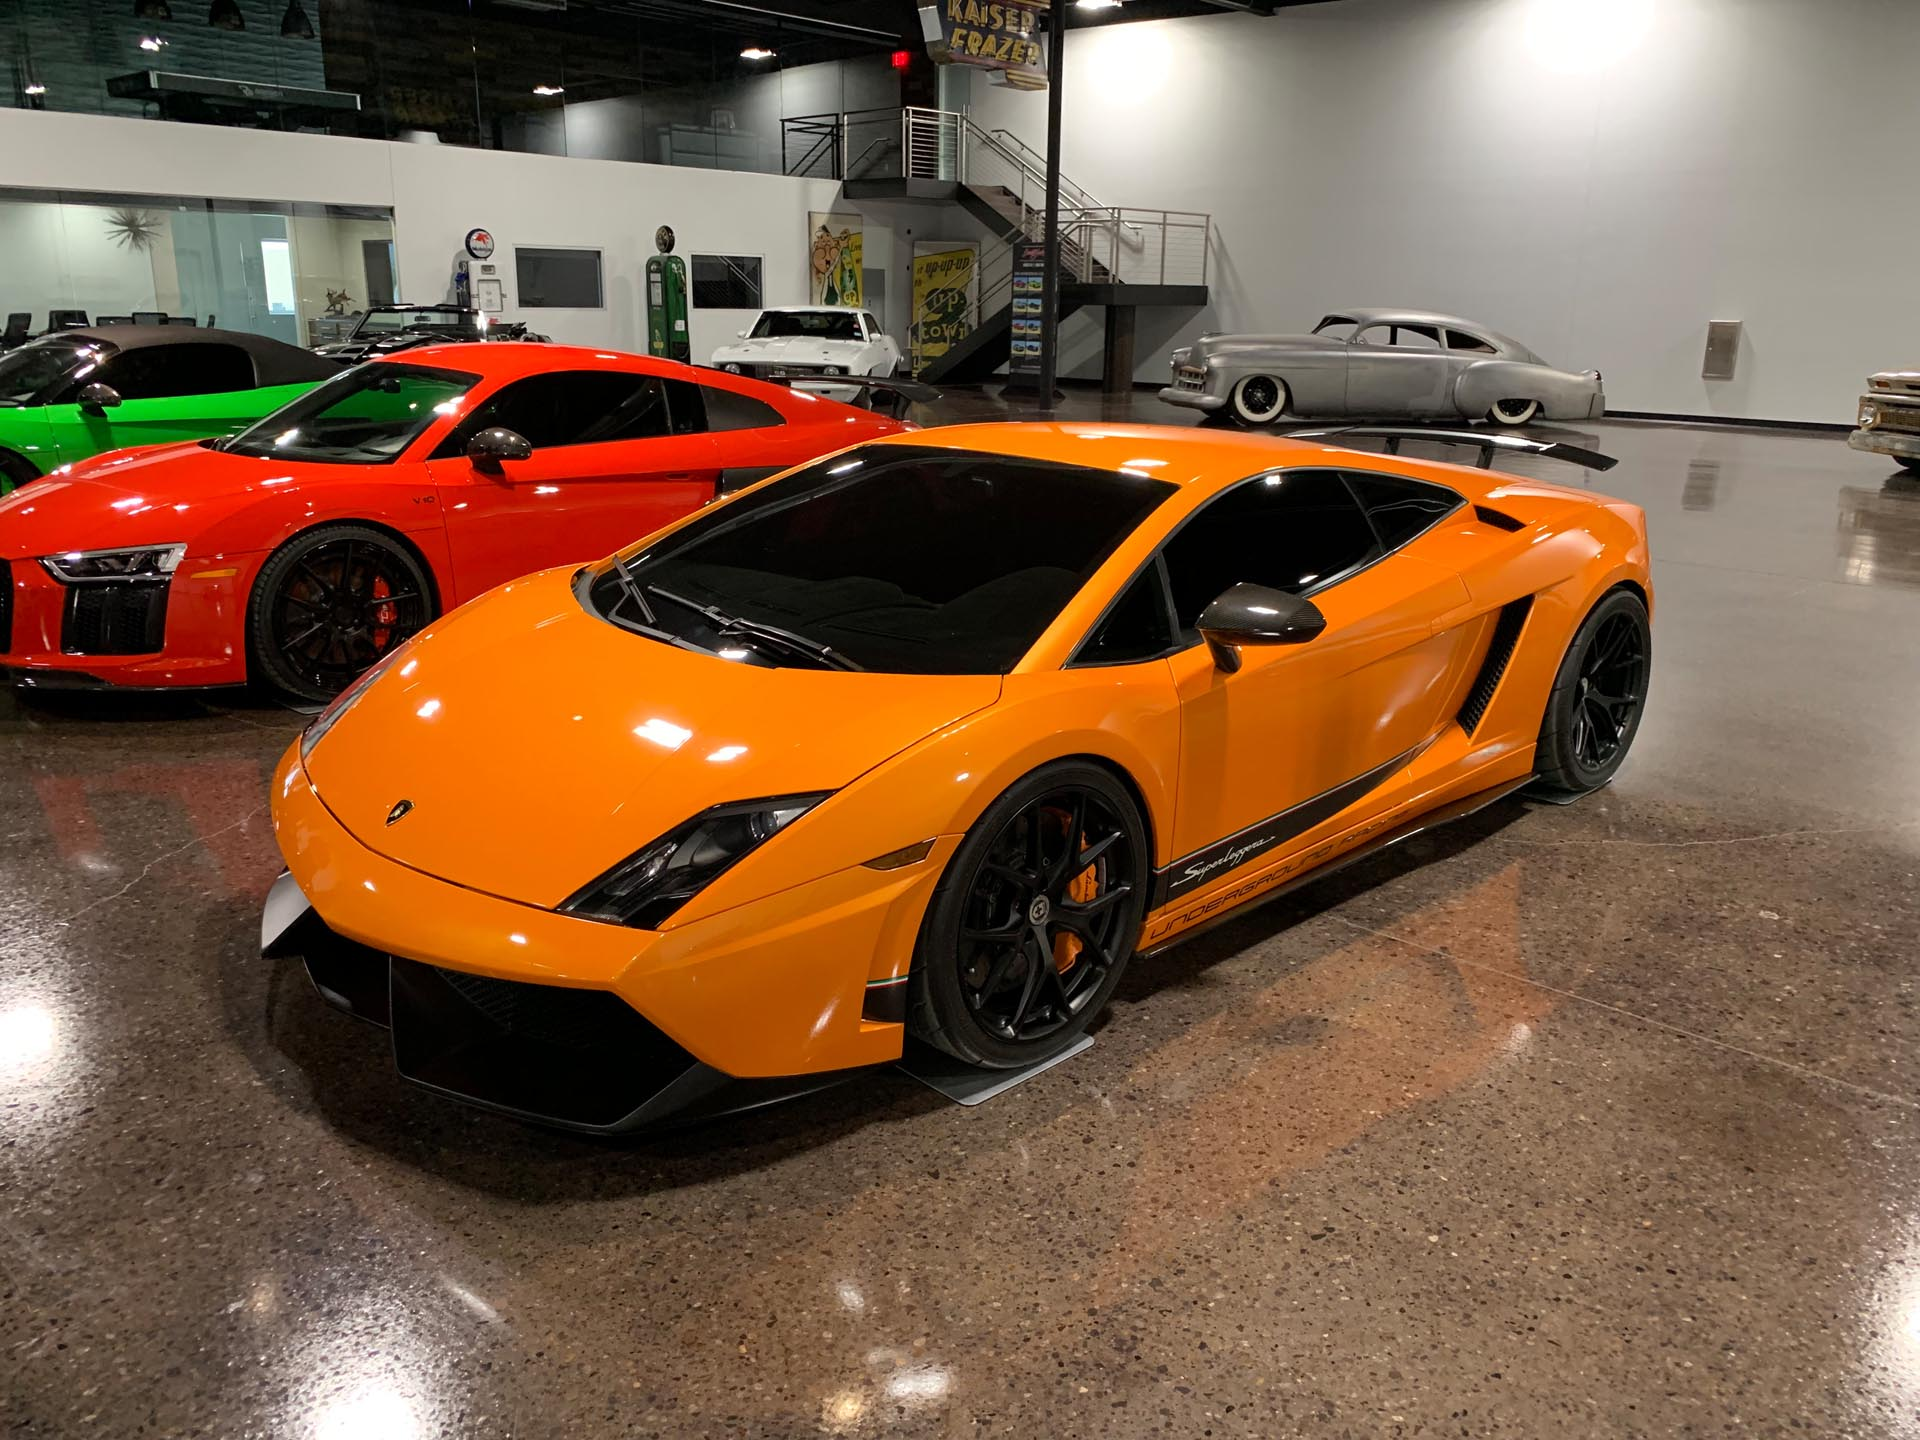 2012 Lamborghini Gallardo Superleggera Coupe